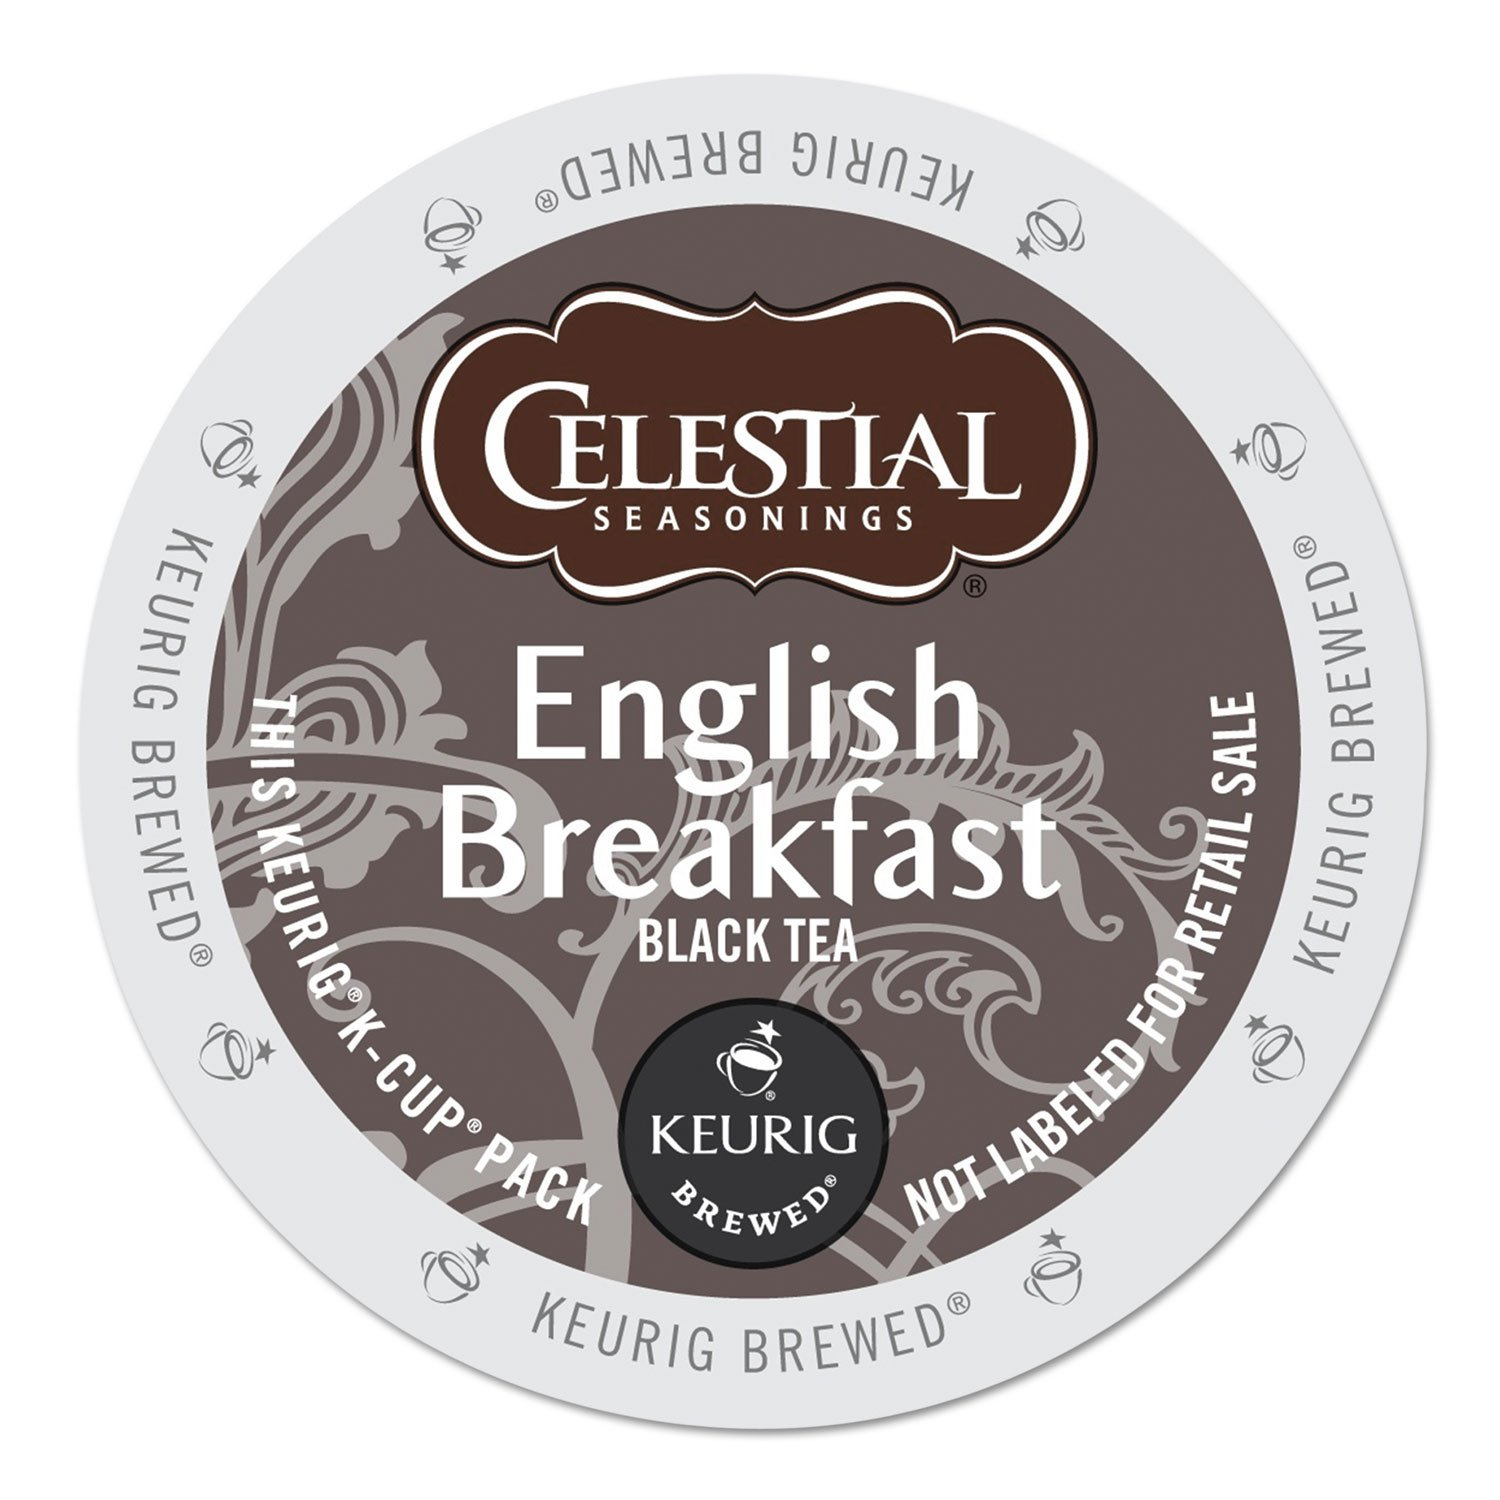 Celestial Seasonings 14731CT English Breakfast Black Tea K-Cups, 96/carton 71fU-hjH2BmL